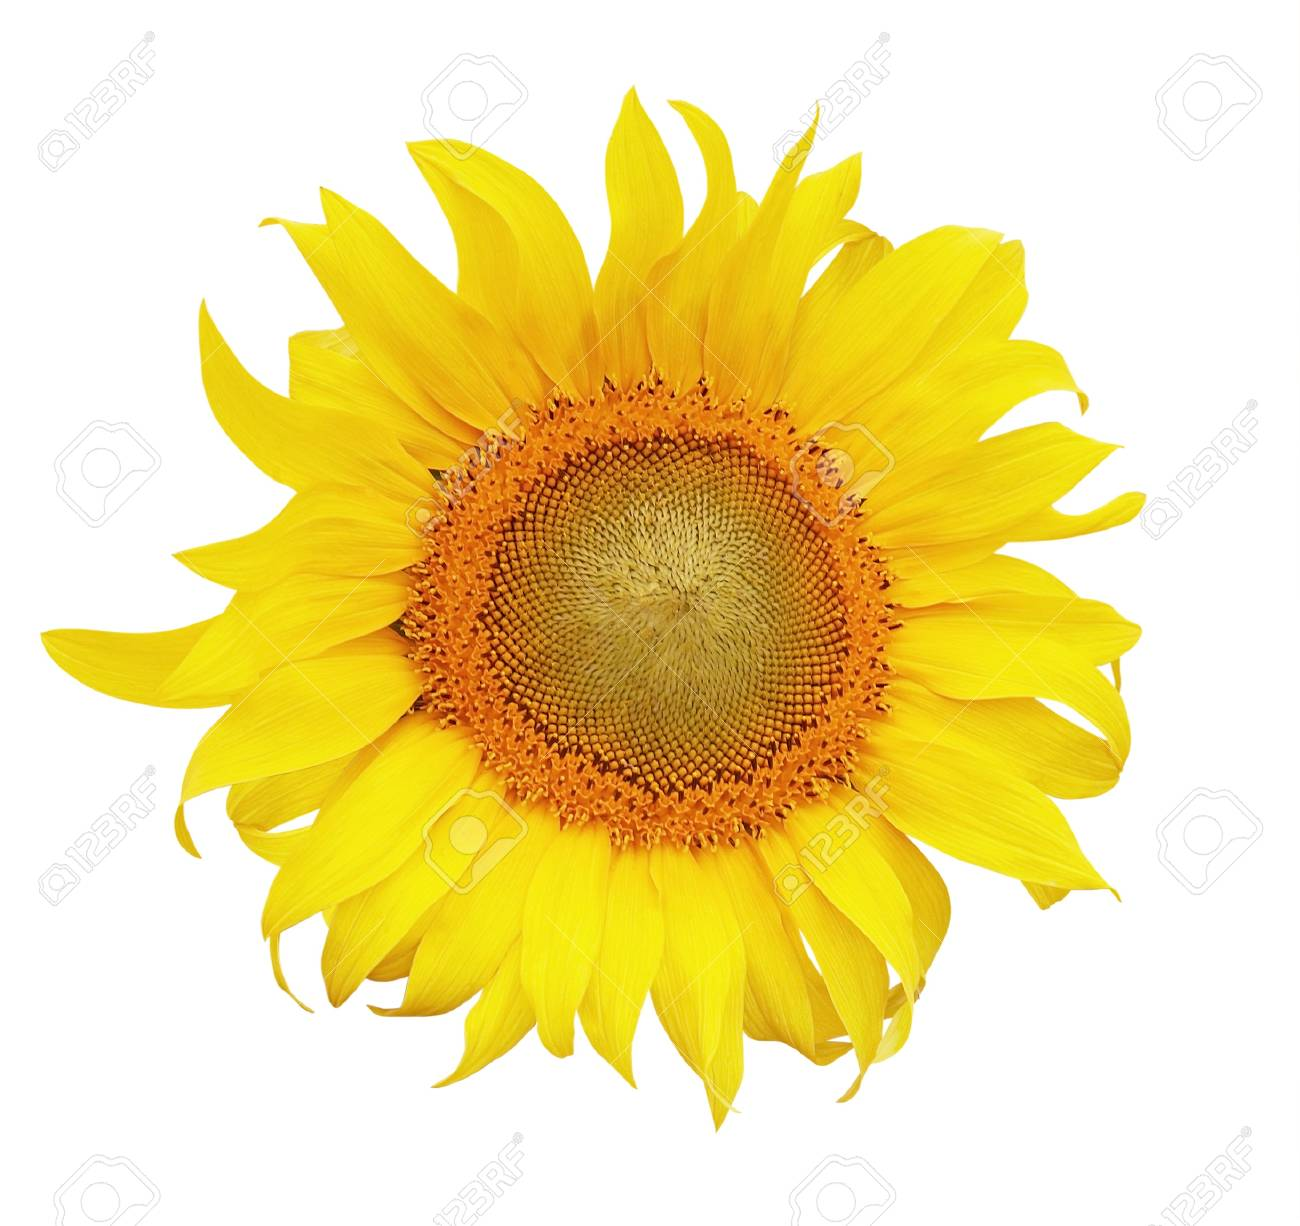 sunflower isolated on white background Stock Photo - 12350651